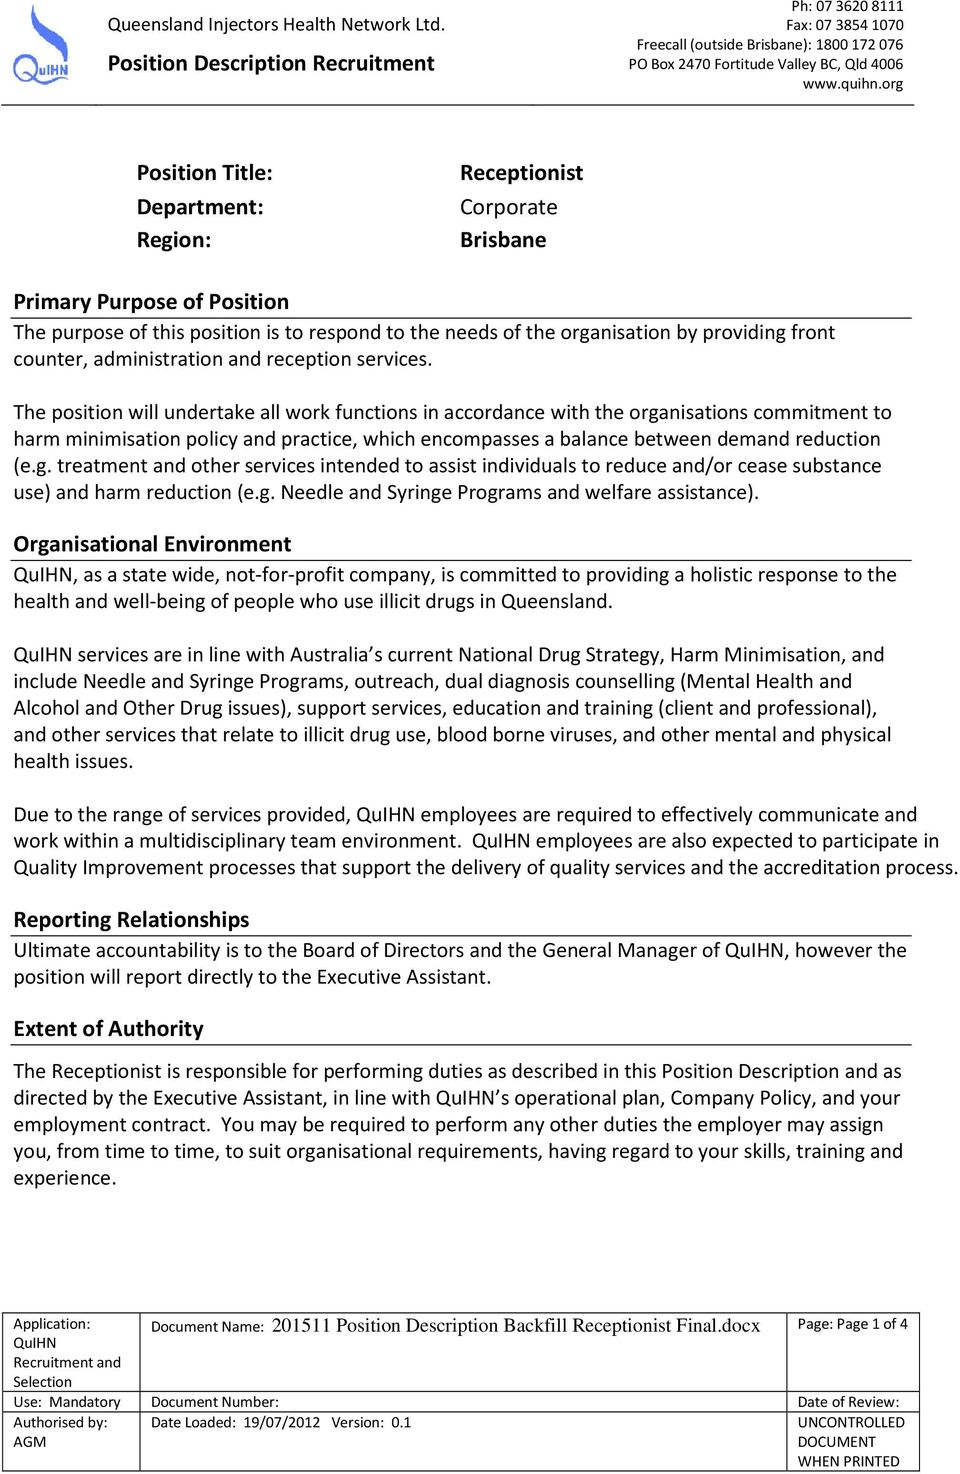 The position will undertake all work functions in accordance with the organisations commitment to harm minimisation policy and practice, which encompasses a balance between demand reduction (e.g. treatment and other services intended to assist individuals to reduce and/or cease substance use) and harm reduction (e.